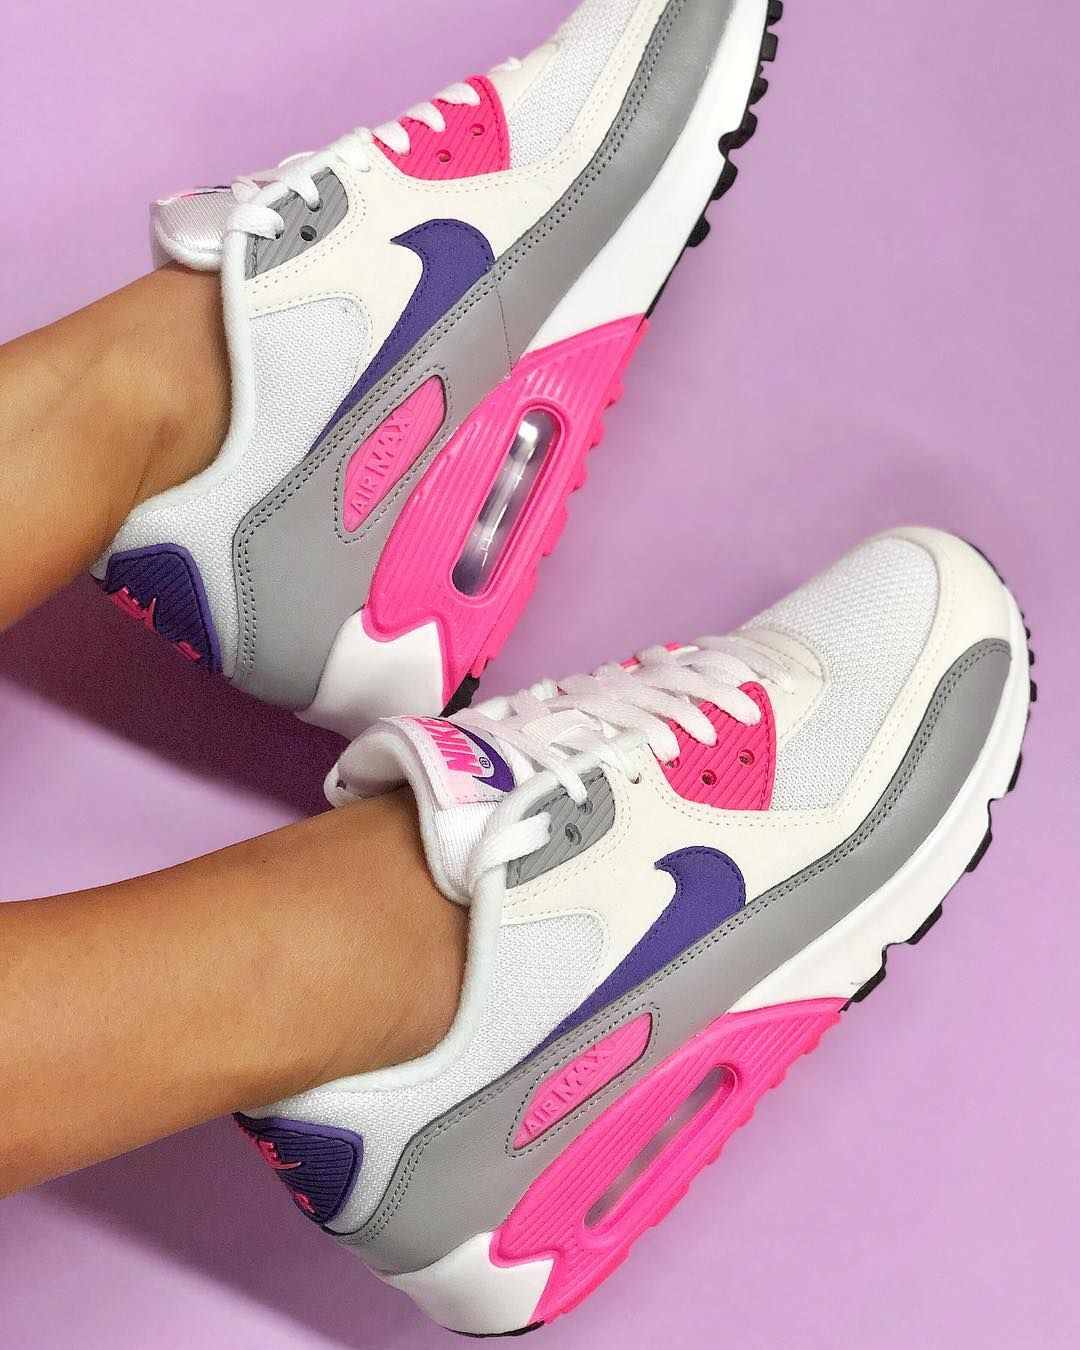 info for f94ad e4806 We take a look at this classic Nike Air Max 90 women s shoe in a winning  colour combination of white, purple, grey and pink.